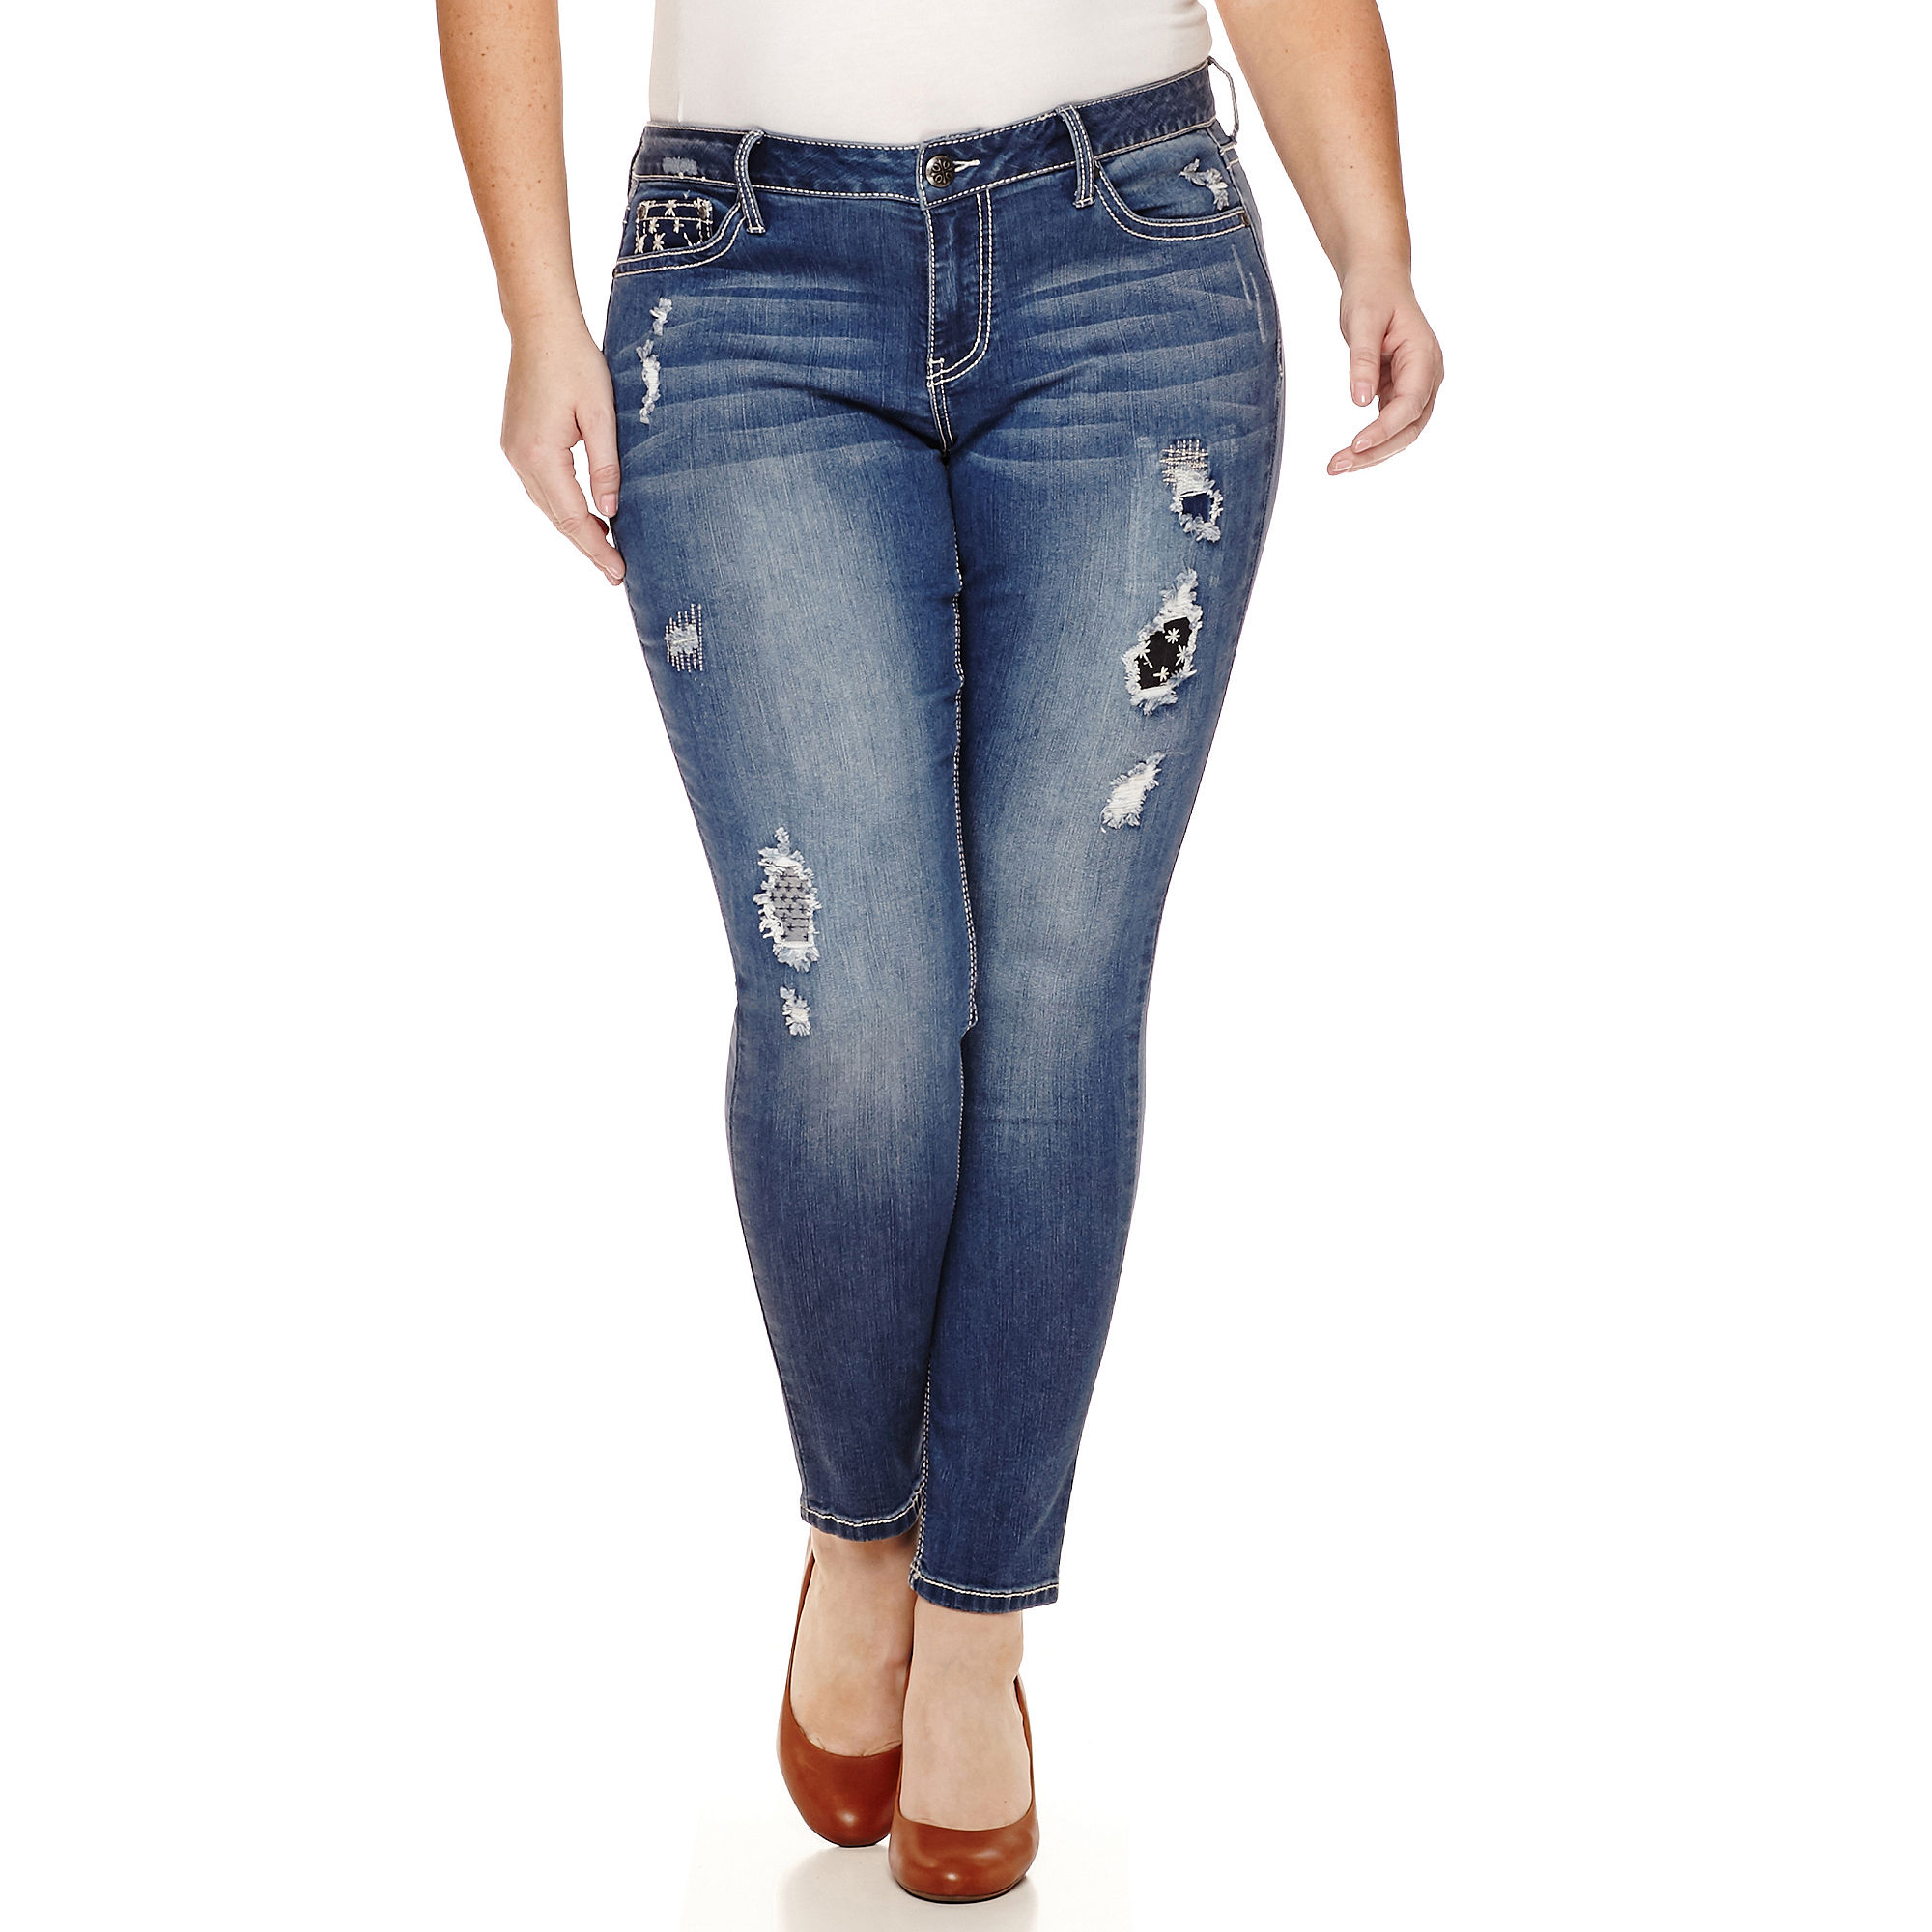 Love Indigo Patch Denim Skinny Jeans - Plus